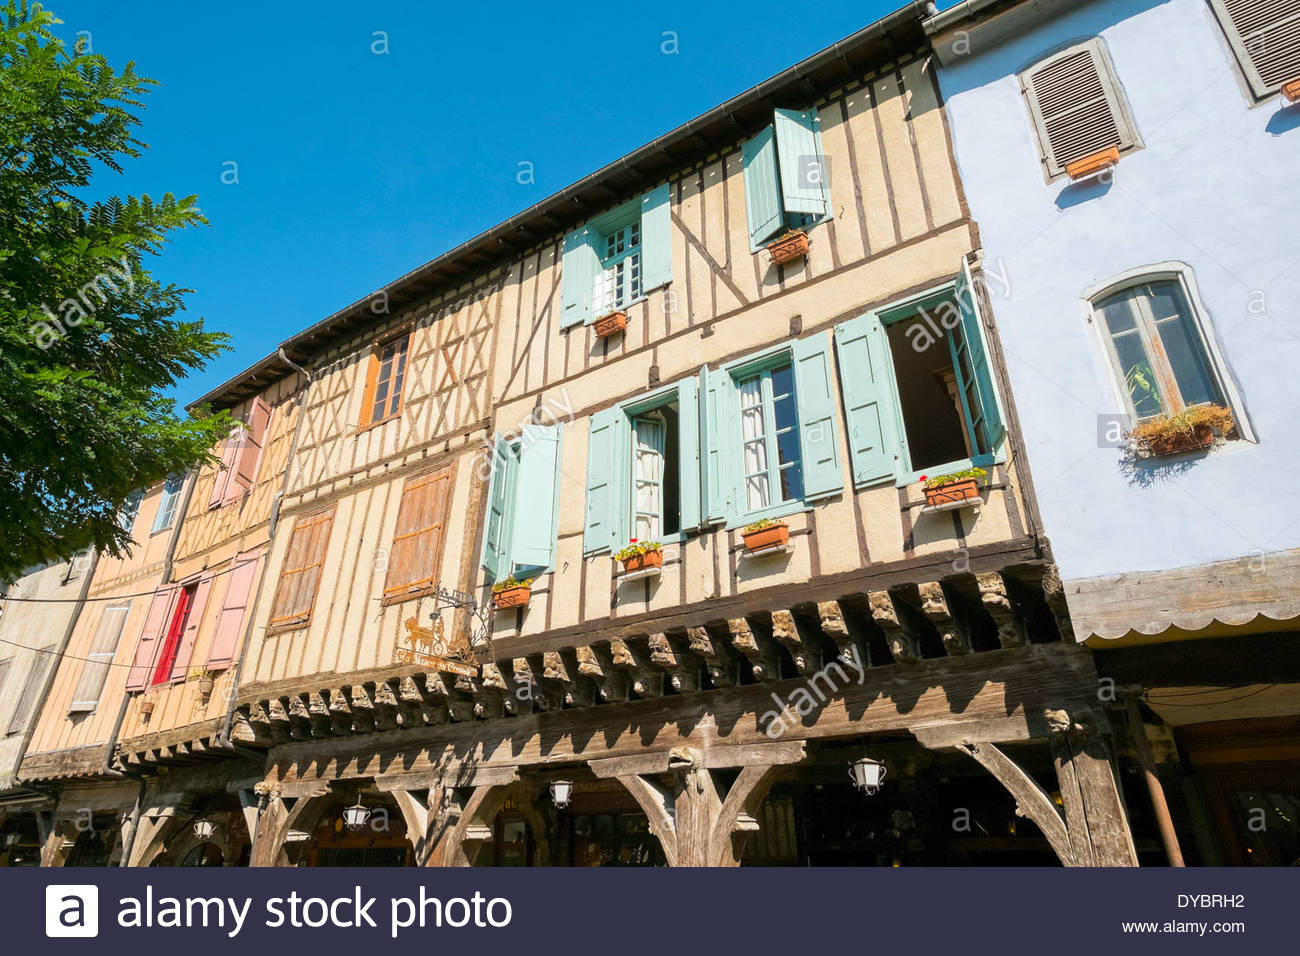 Half-timbered buildings on Place de Couverts in bastide town of Mirepoix, Ariège, Midi-Pyrénées, France - Stock Image